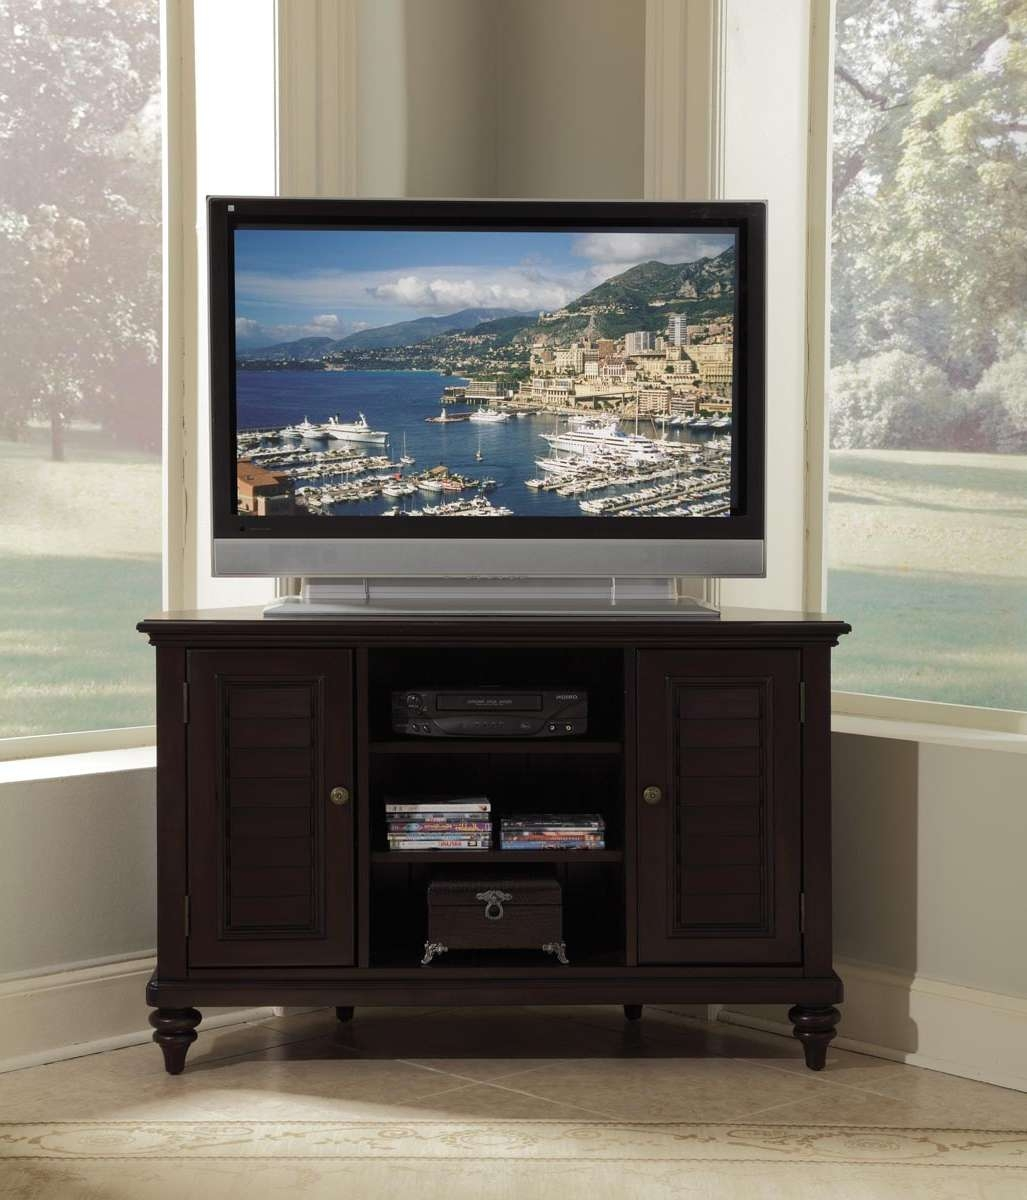 Tv Stand With Rounded Corners – Round Designs Within Tv Stands With Rounded Corners (View 12 of 15)